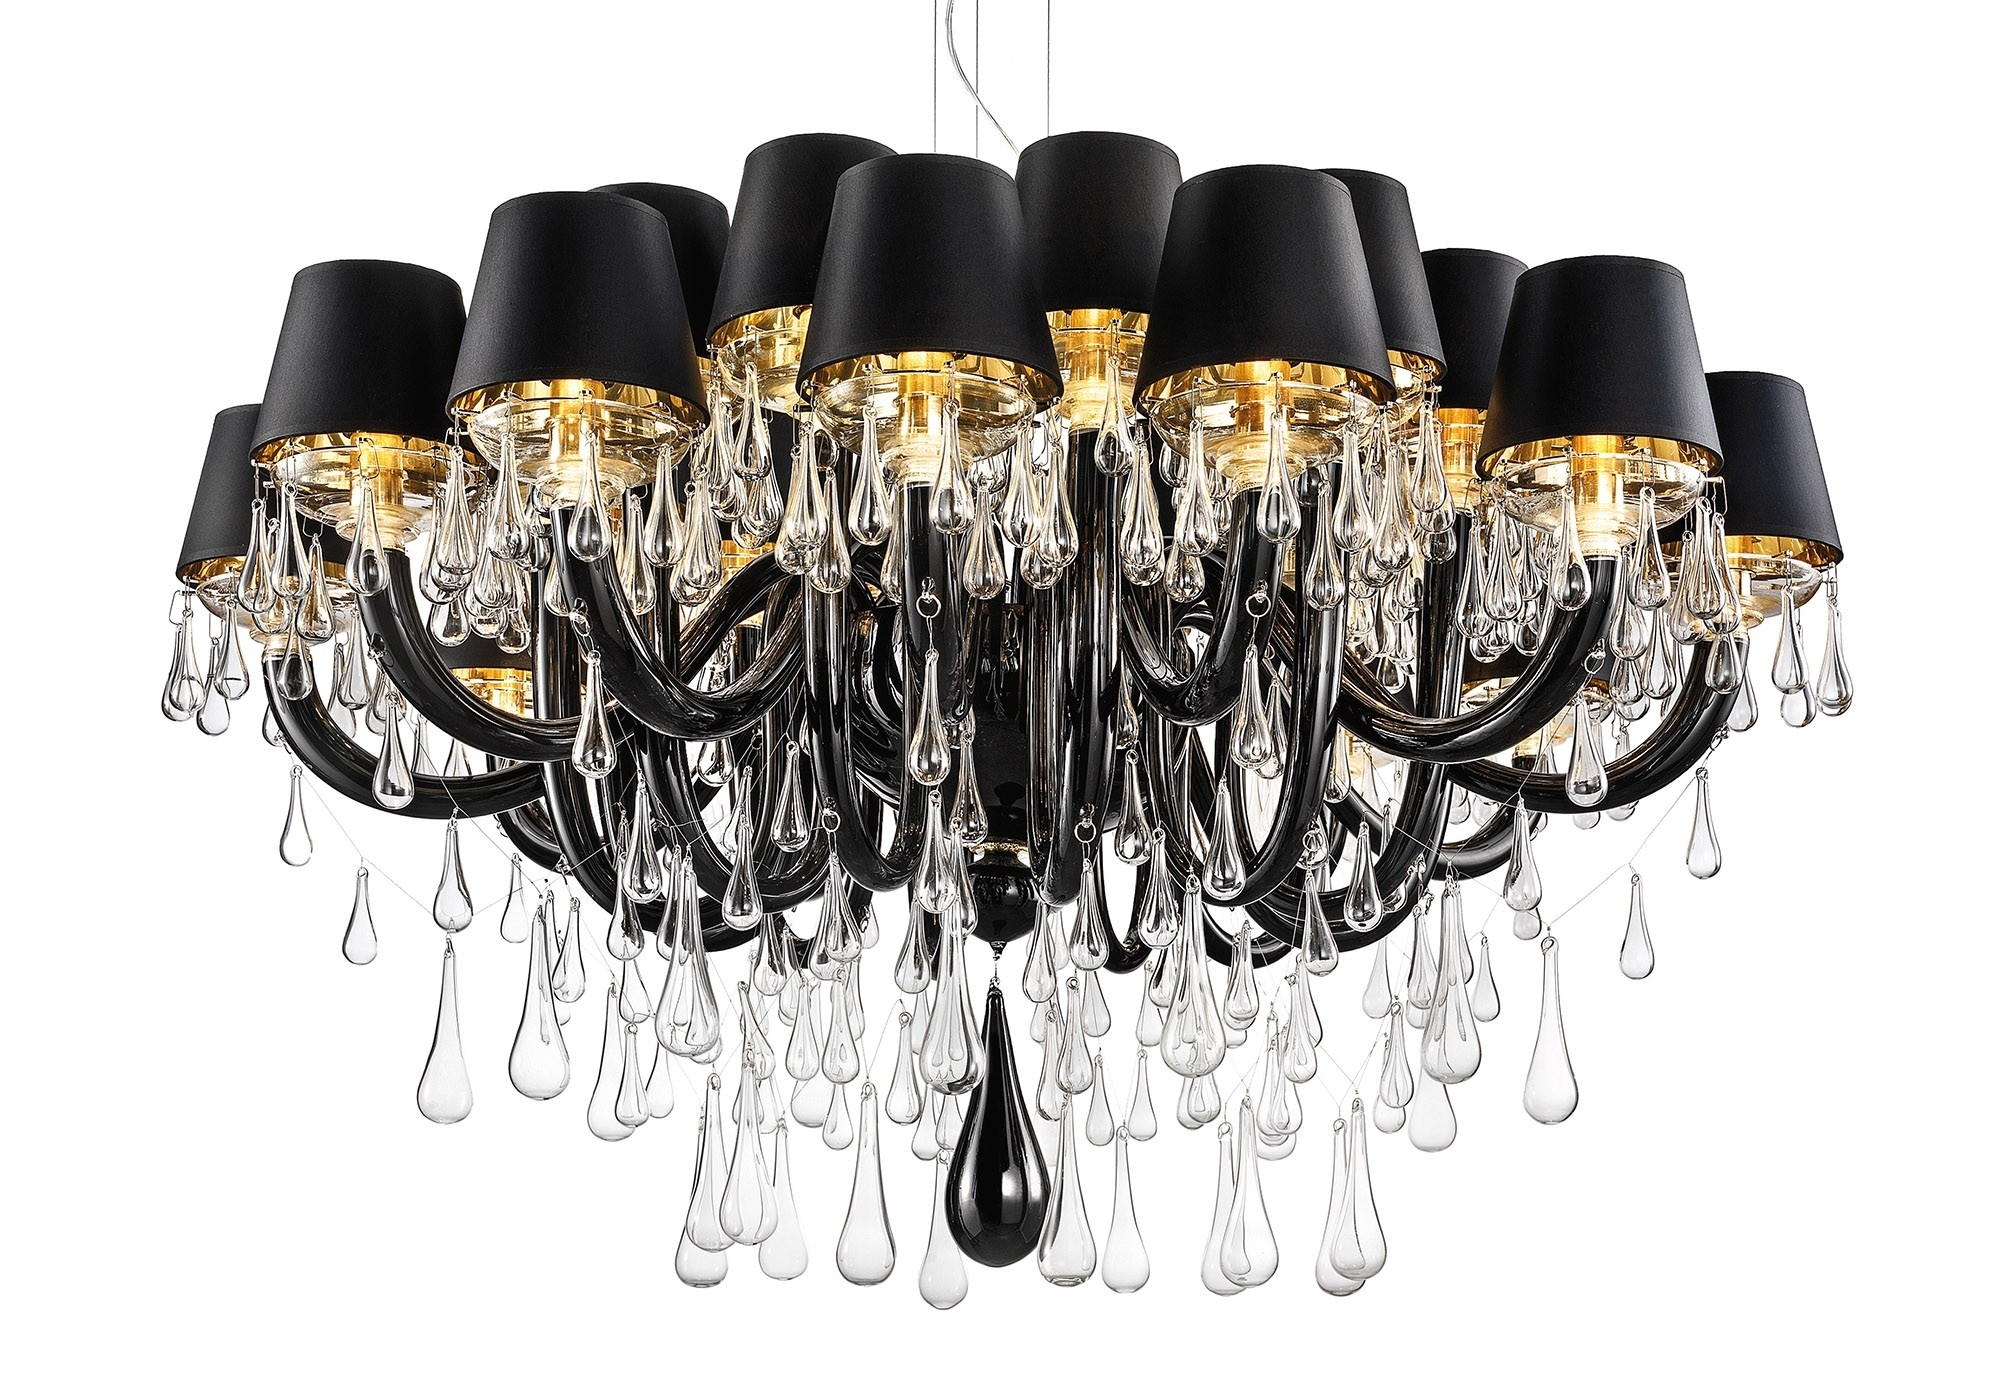 Modern Murano Chandelier Dmgouttes24K – Murano Lighting In Well Known Contemporary Black Chandelier (View 4 of 15)